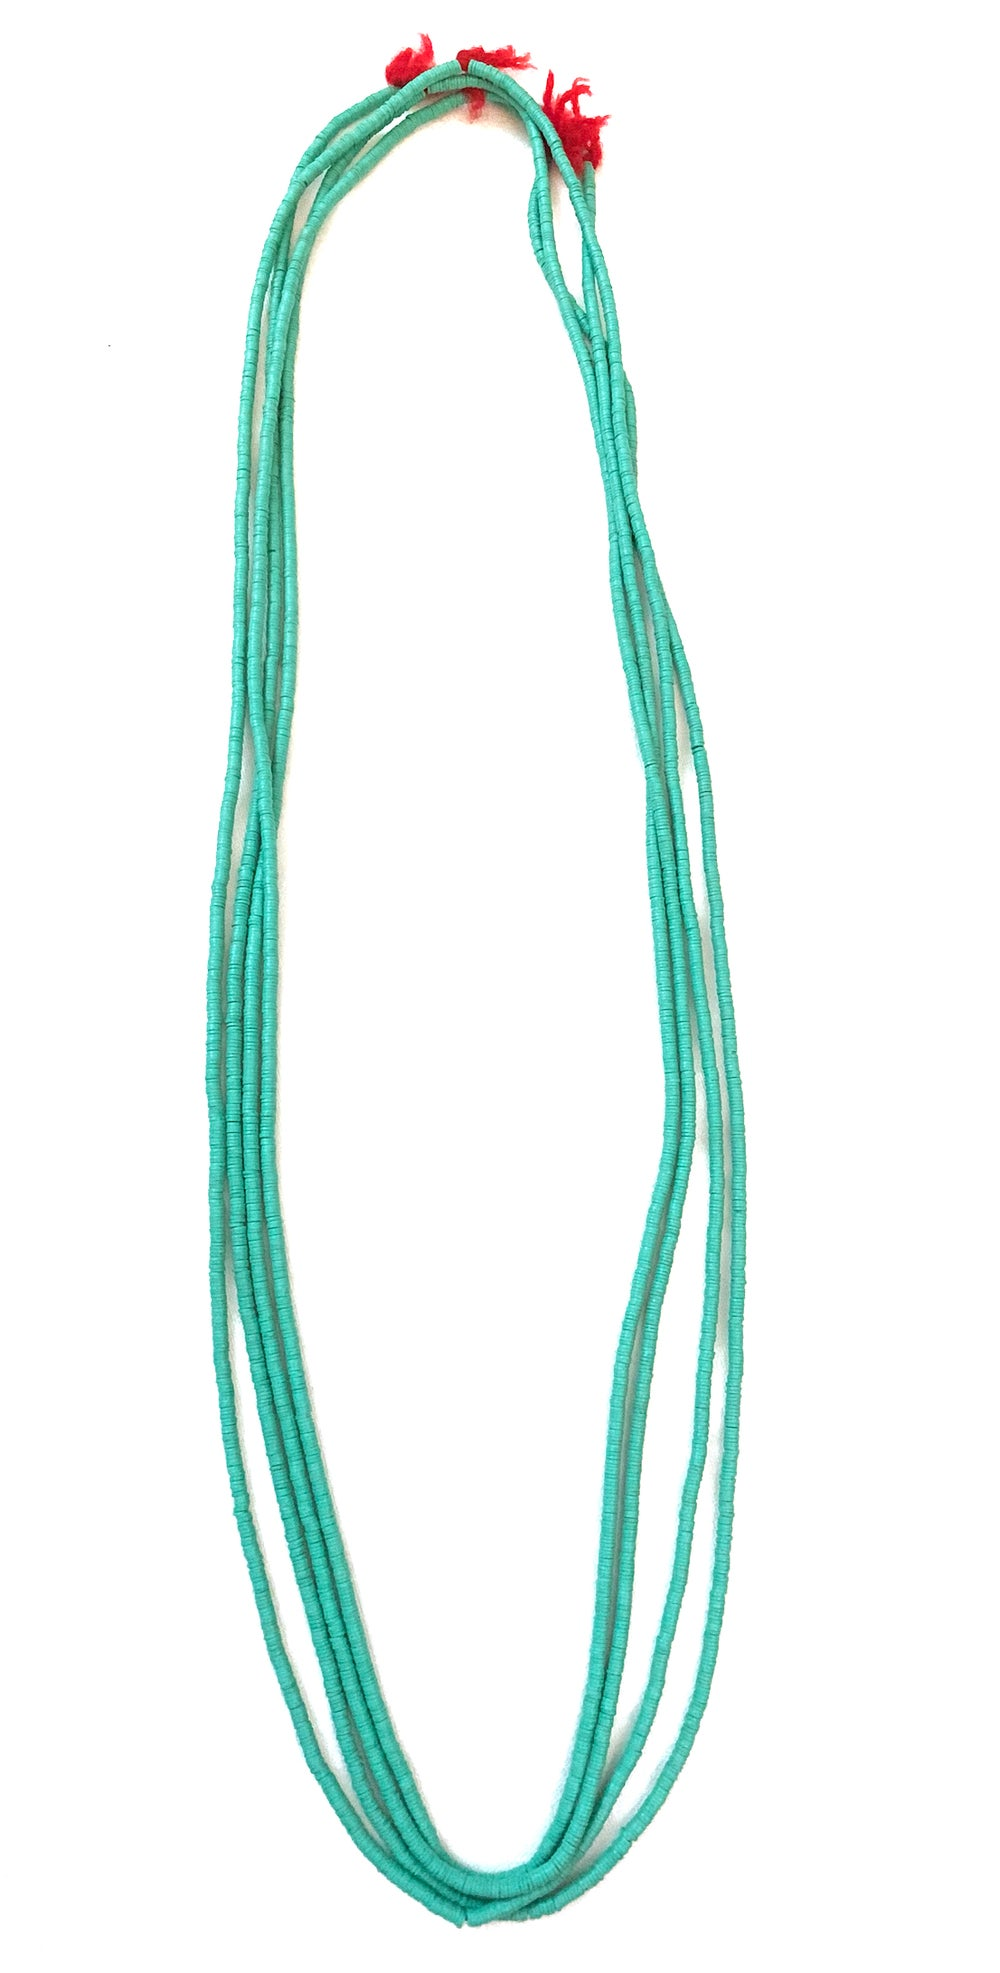 Image of Turquoise Trade beads necklace